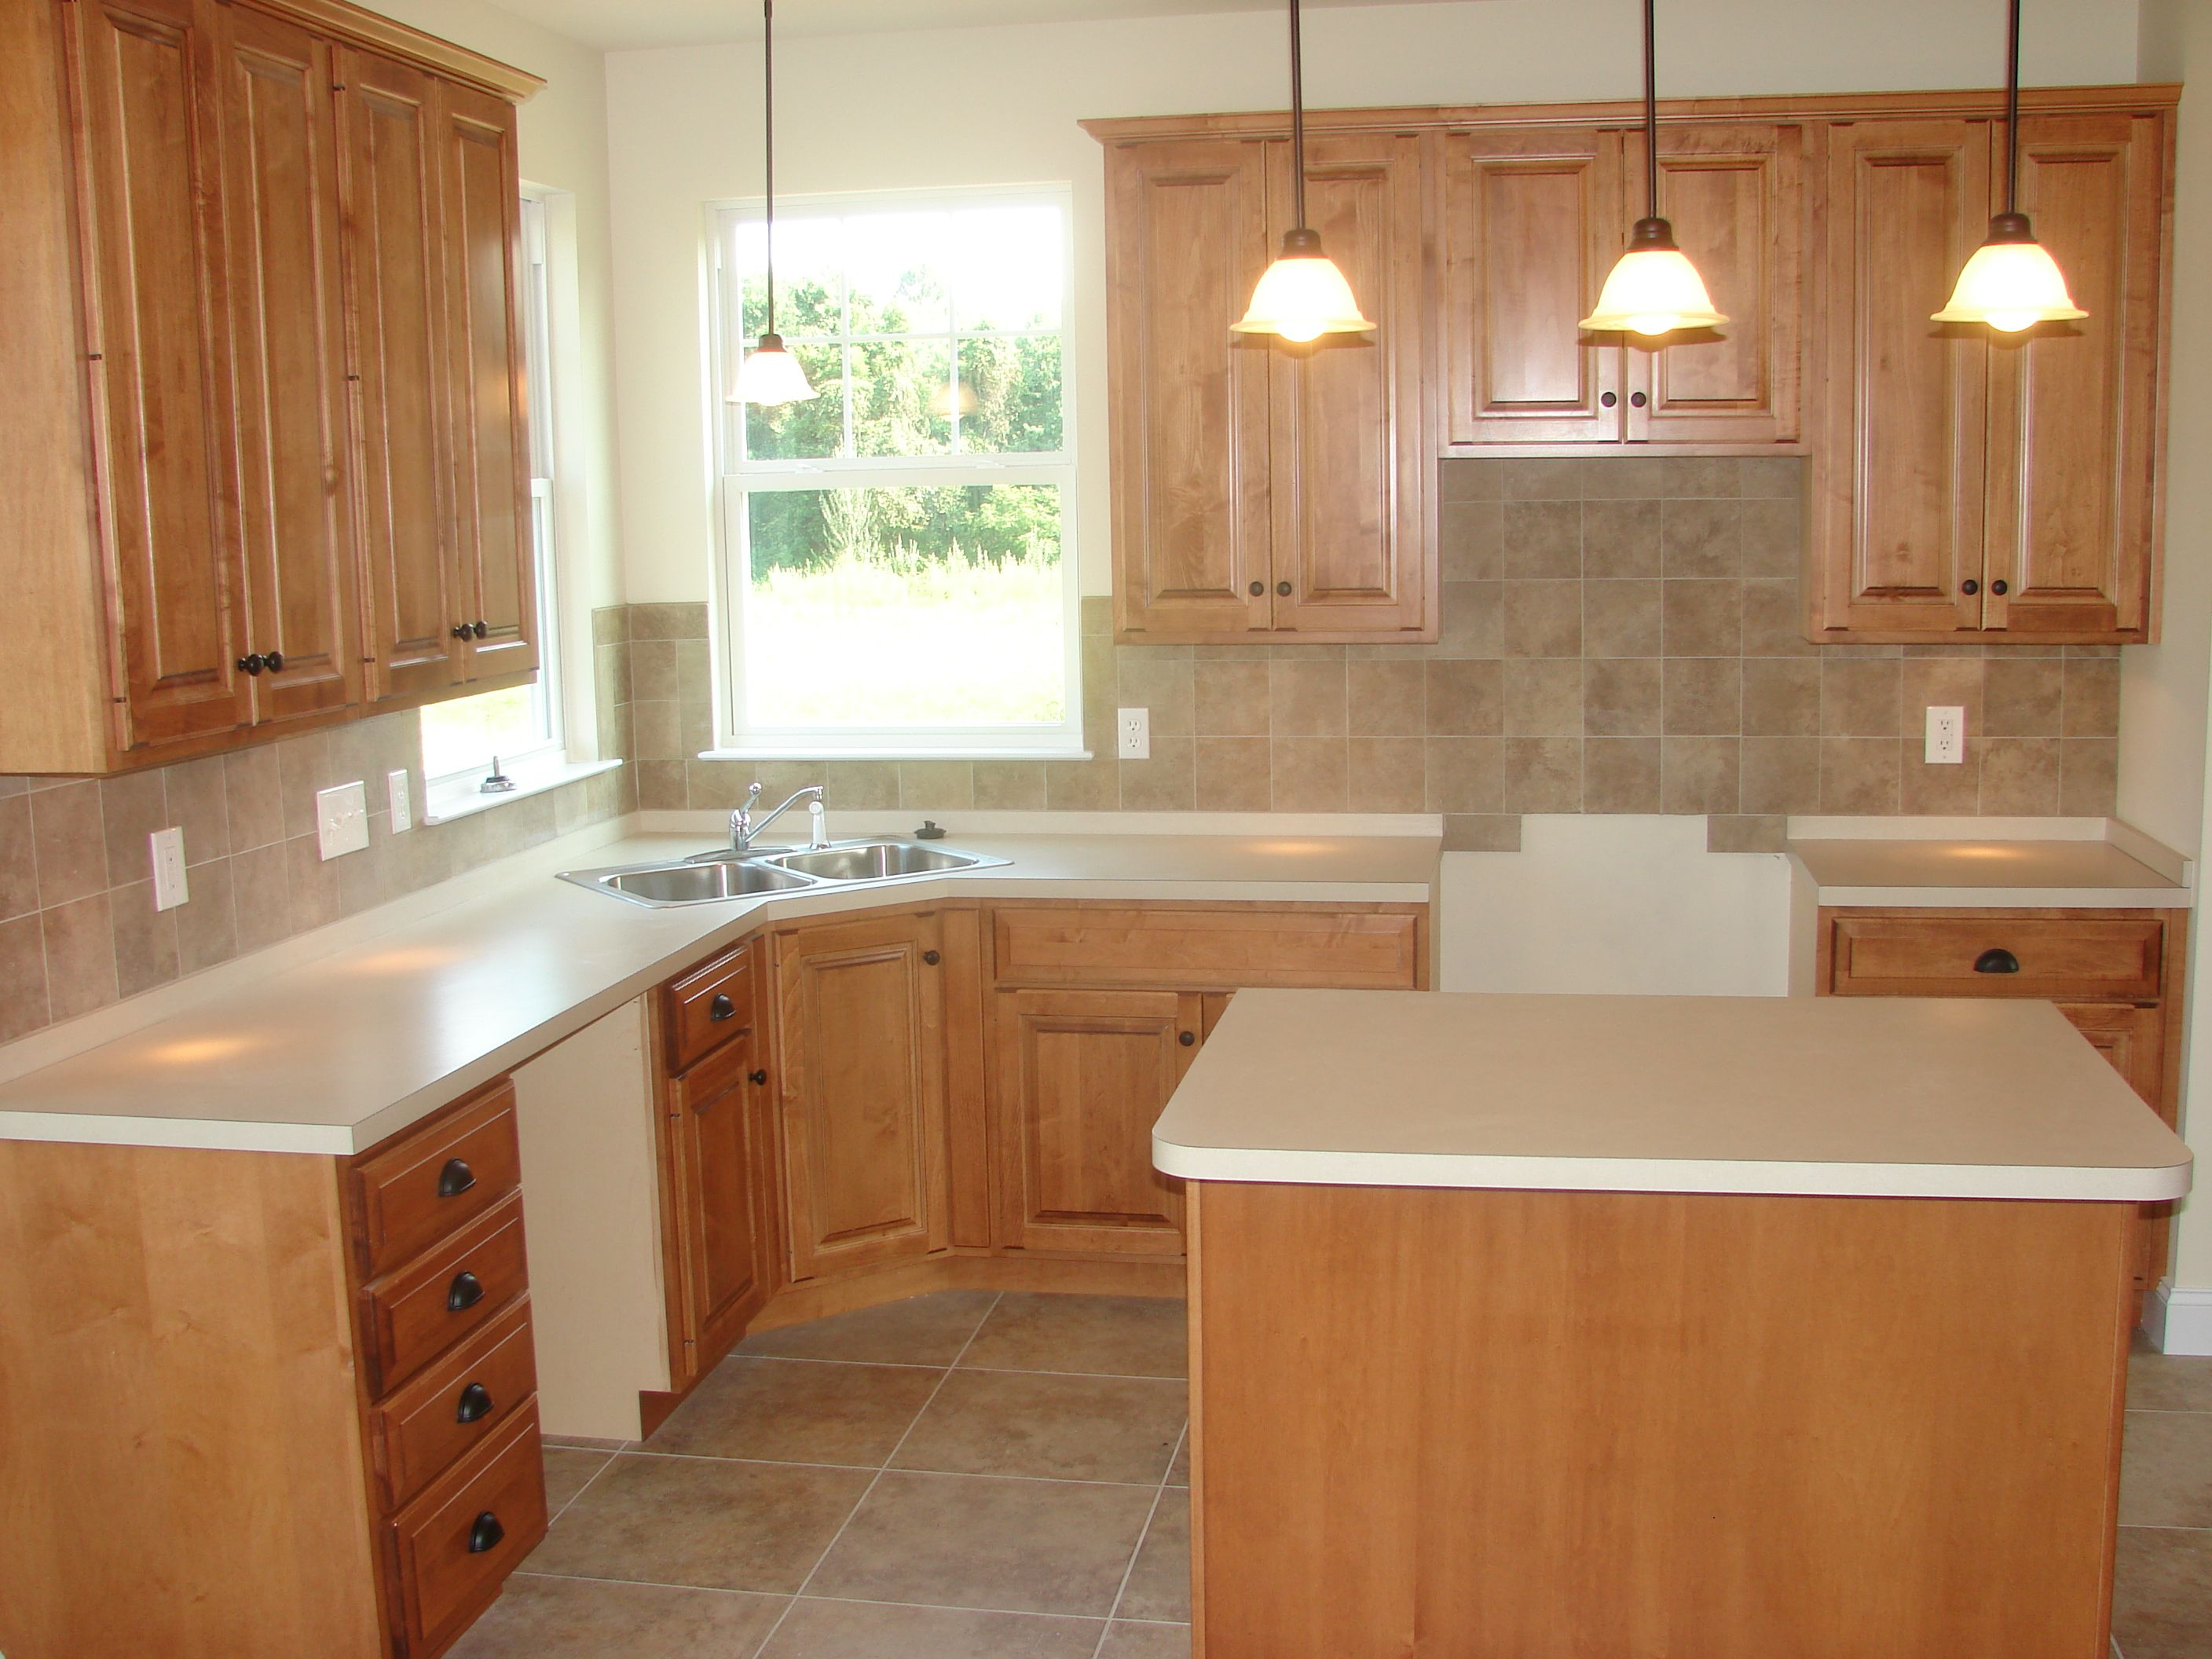 Maple wood cabinets formica counter tops tile floor and tile maple wood cabinets formica counter tops tile floor and tile back splash dailygadgetfo Choice Image